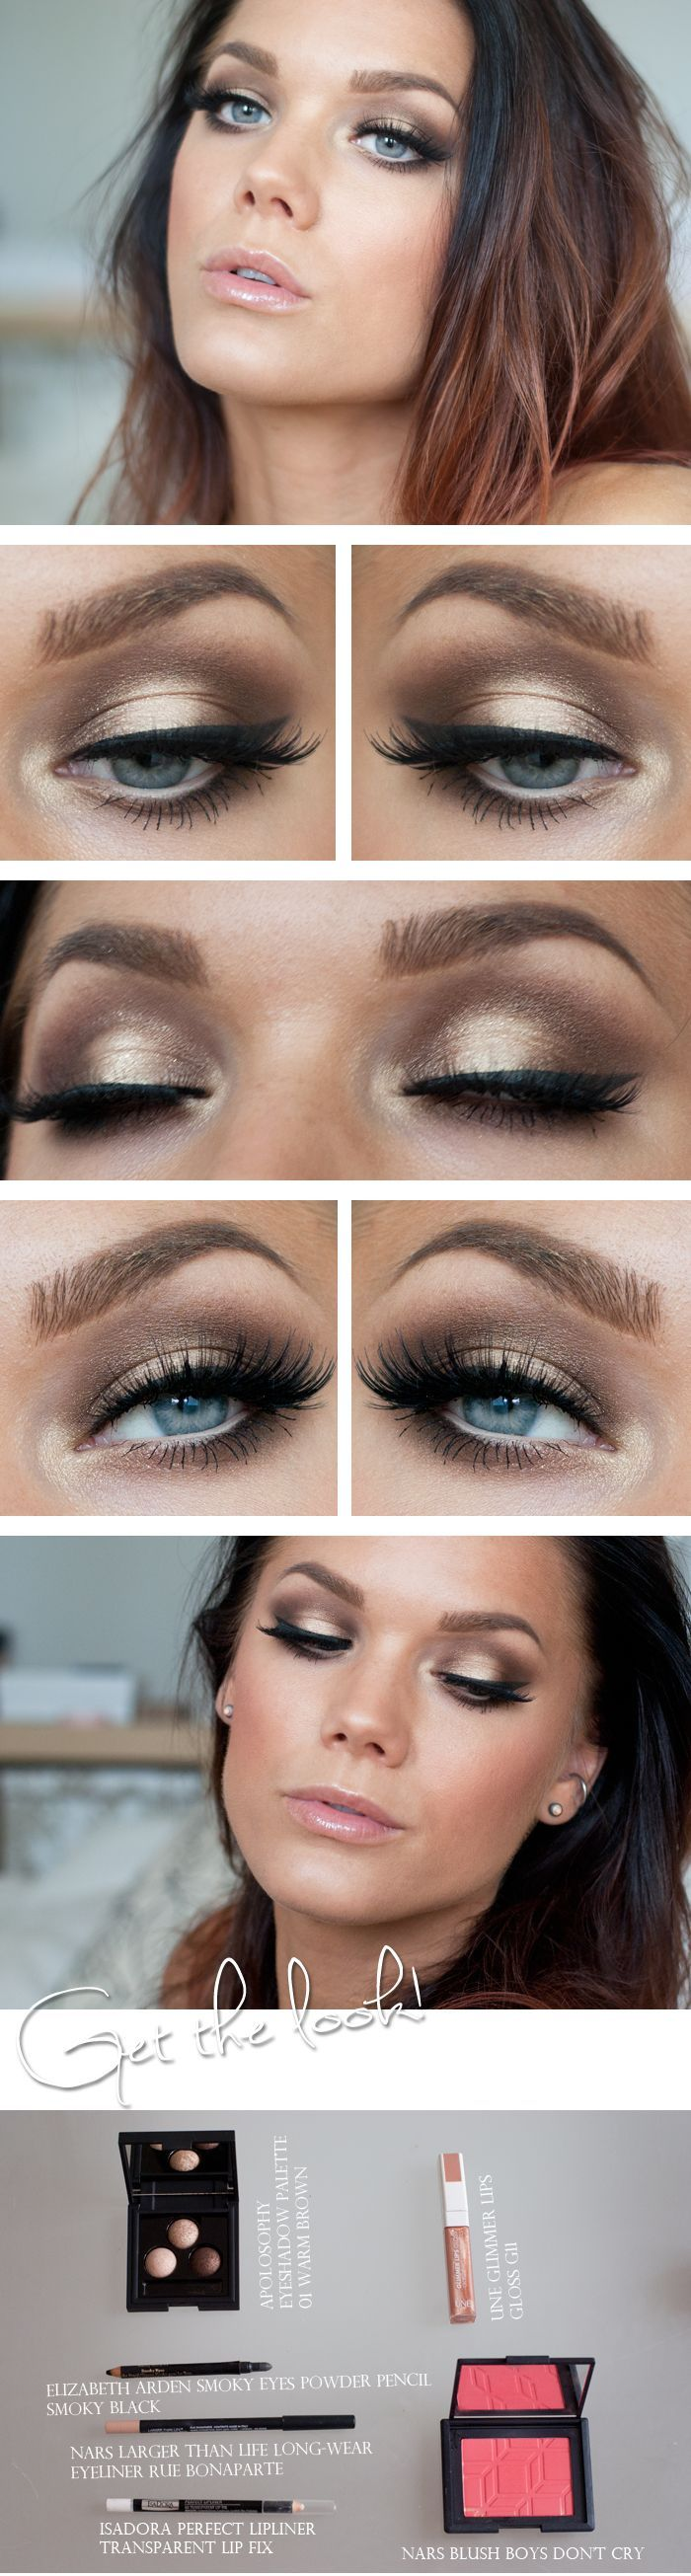 Gold eye makeup tutorial